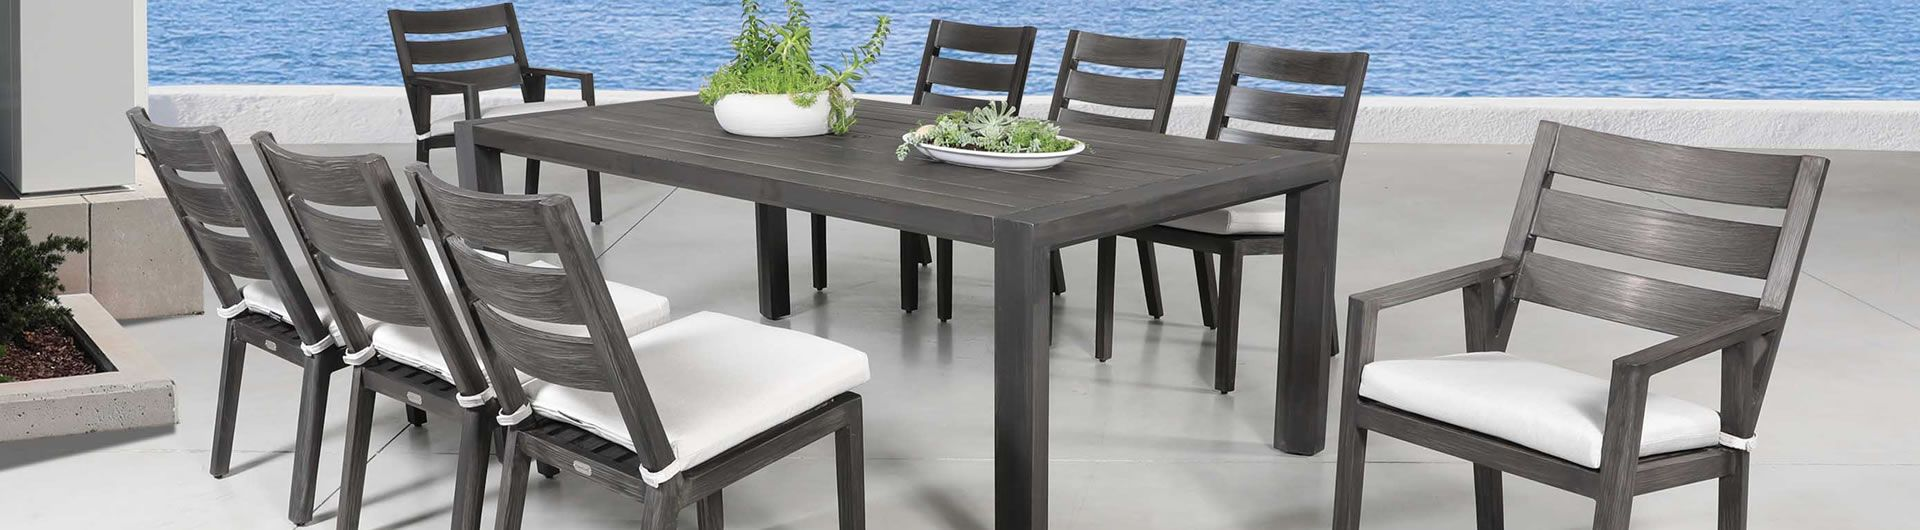 Boardwalk Dining Collection